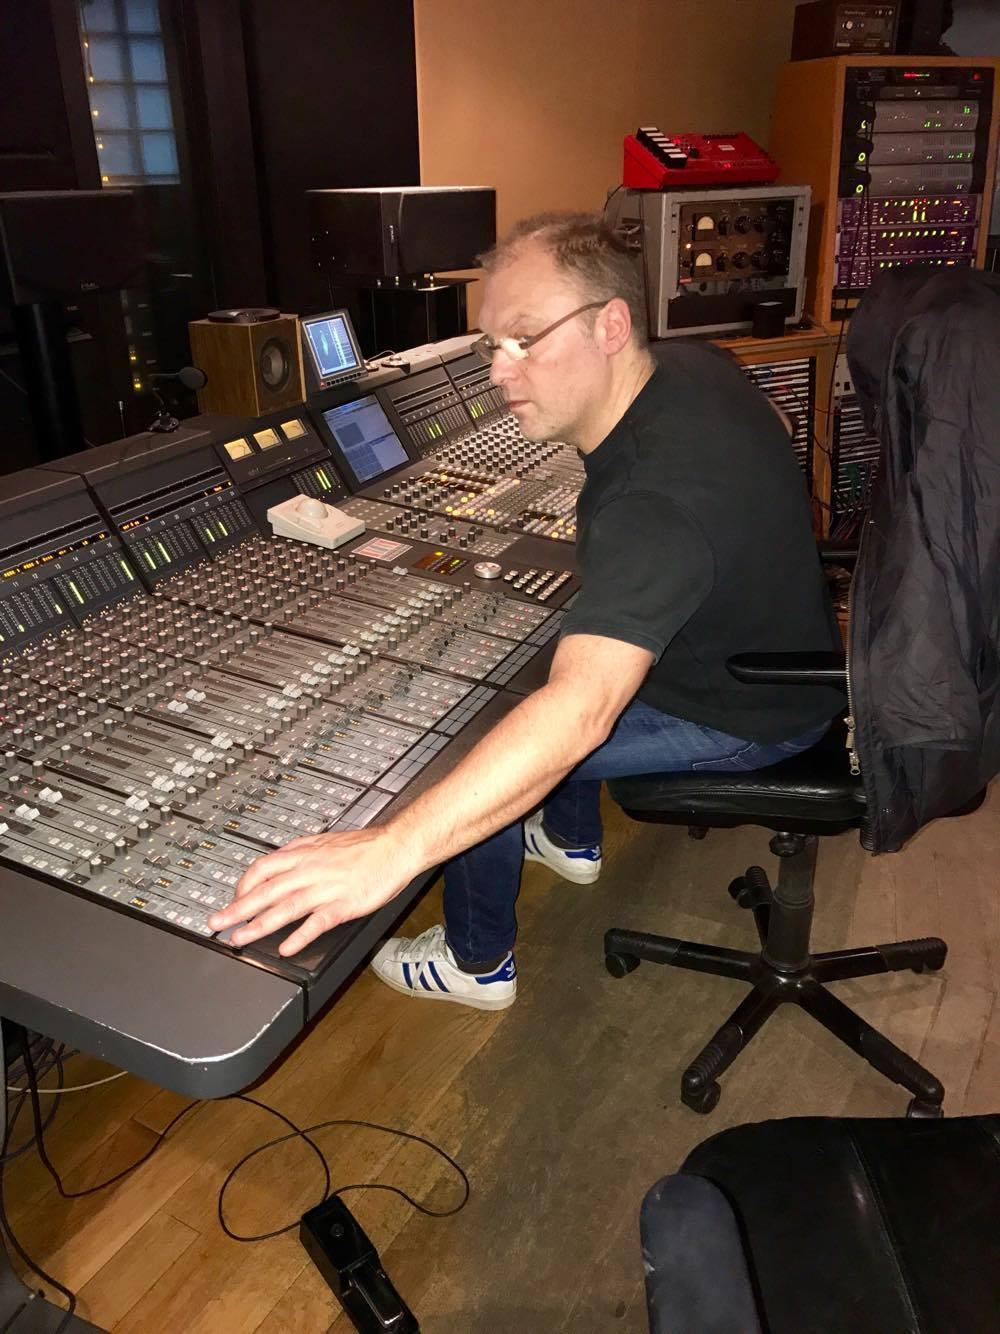 Jon working on his Euphonix CS3000